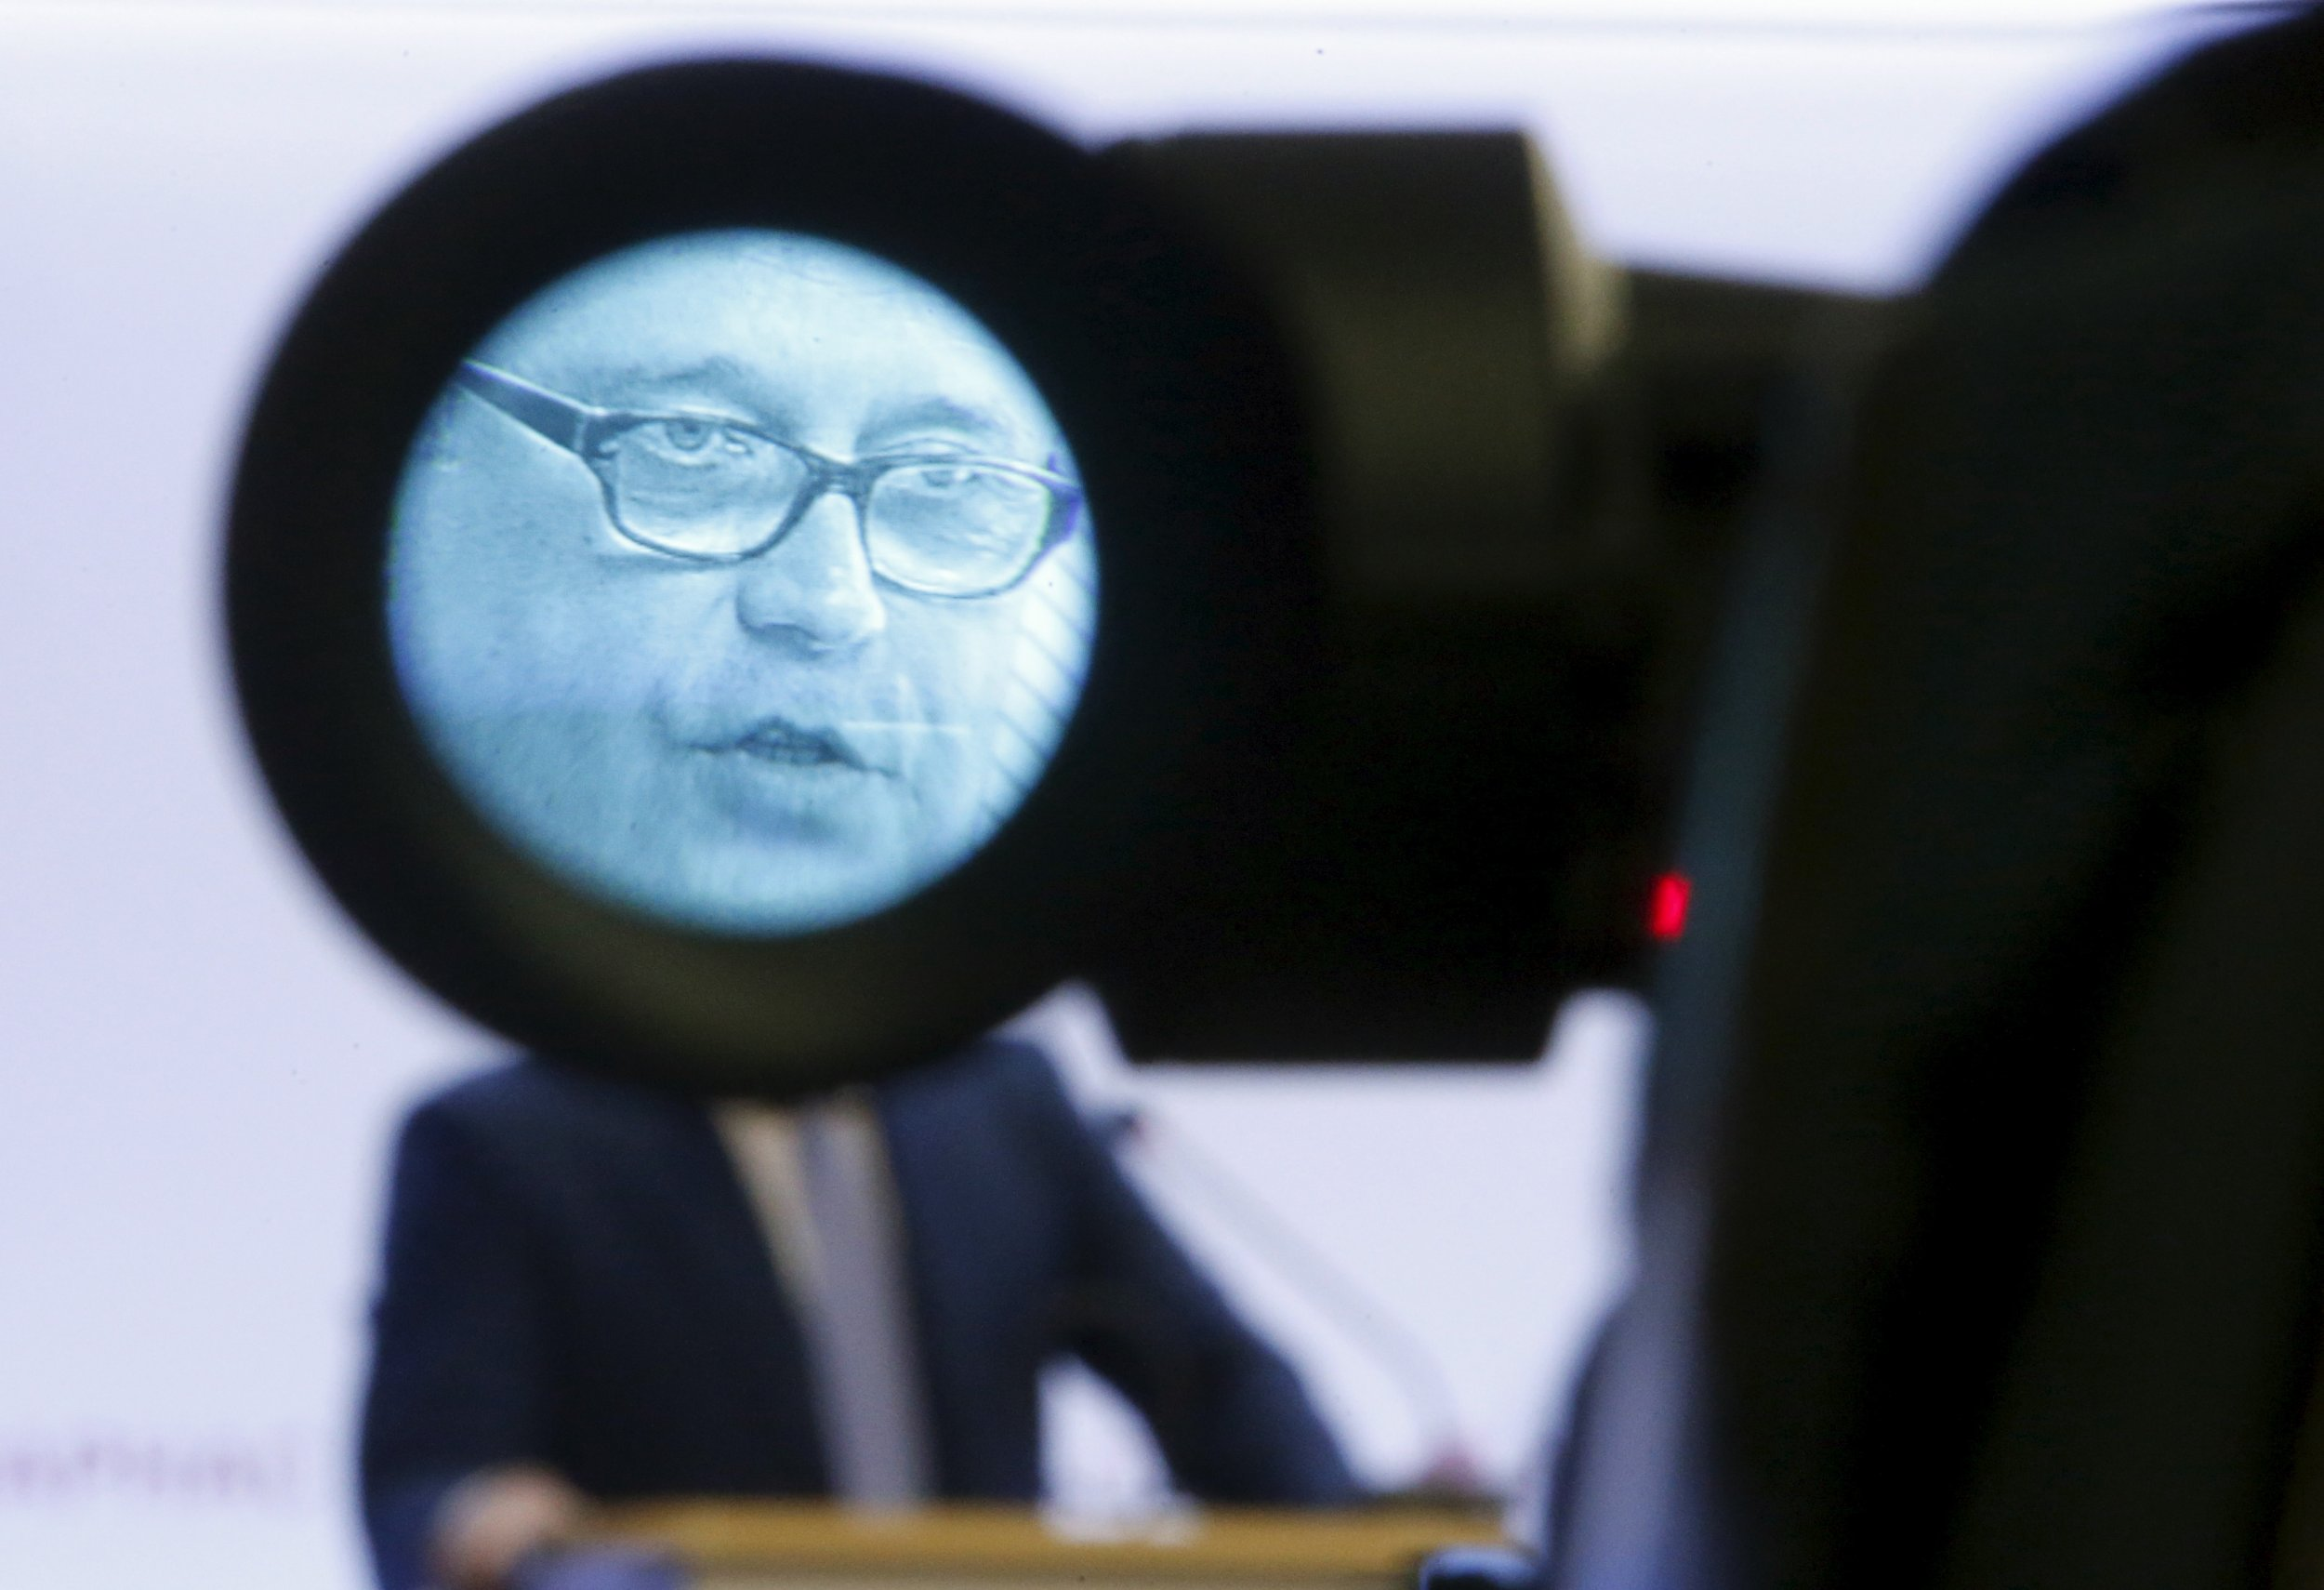 Kasyanov's face seen in a camera close up